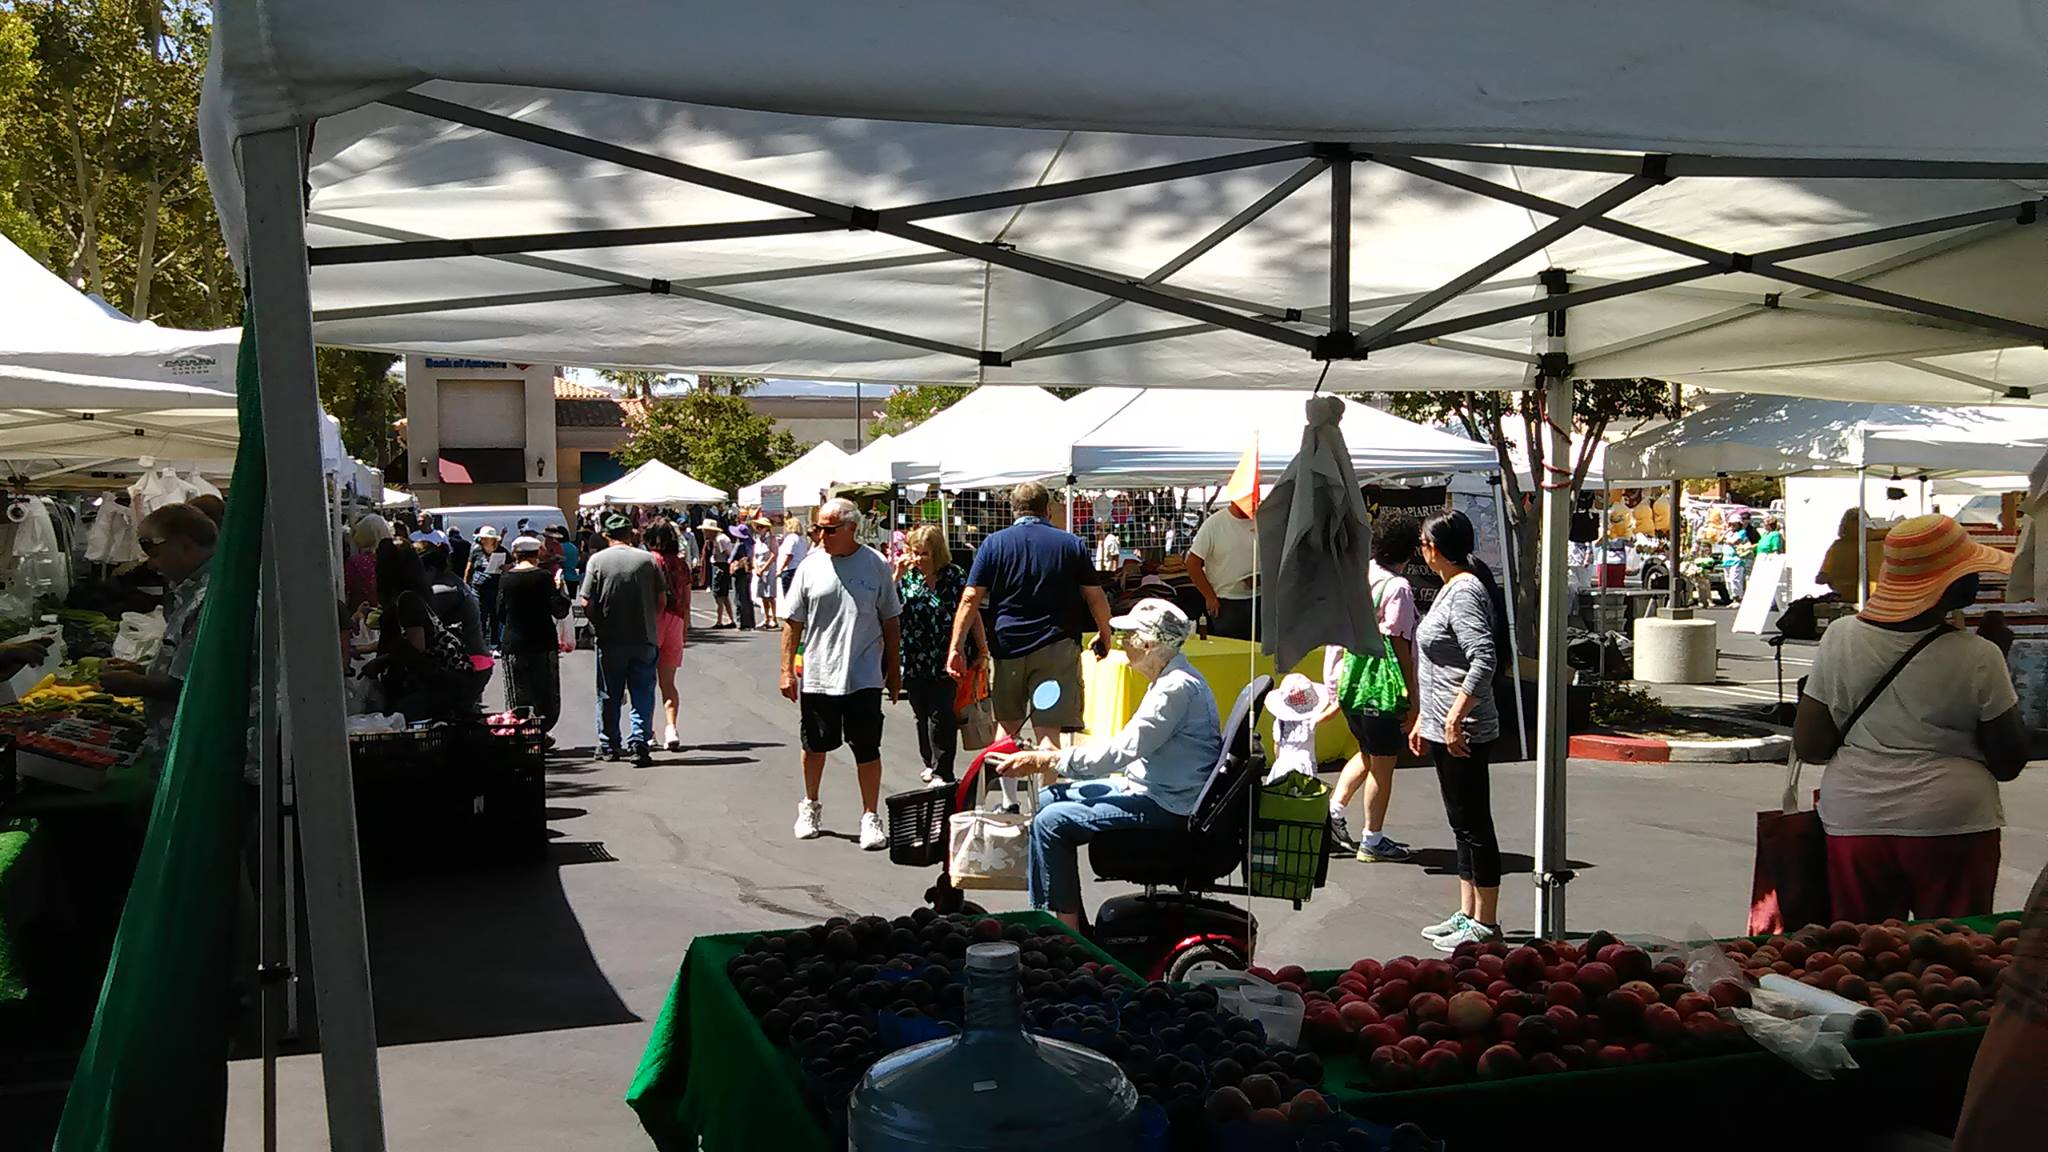 FarmersMarket SimiValley 1